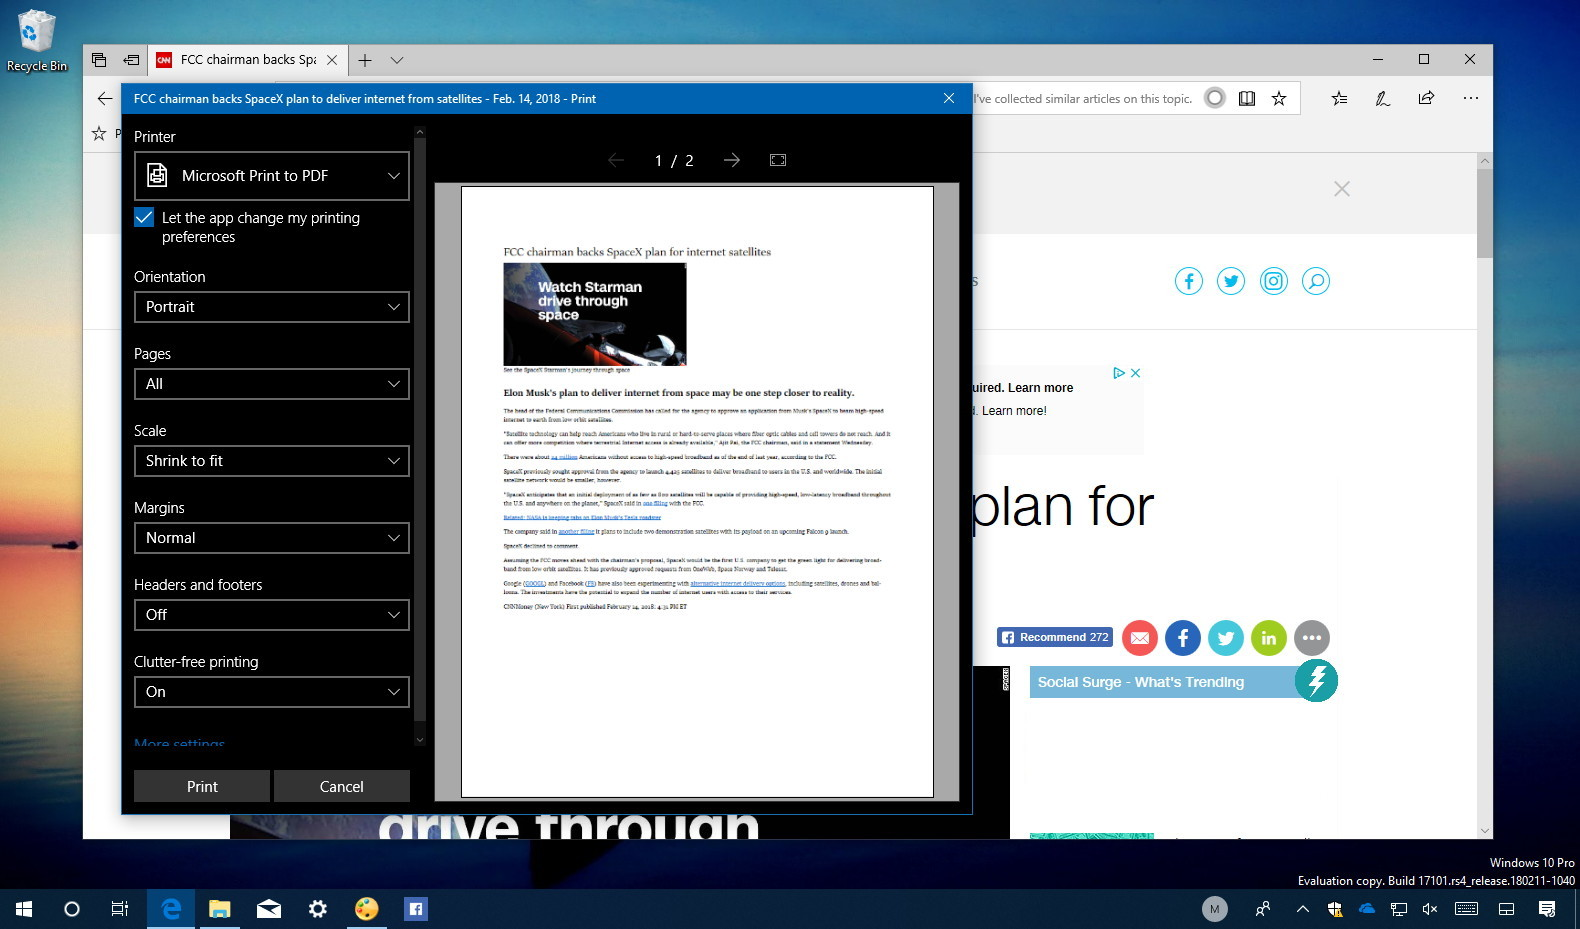 How to print web pages clutter-free on Microsoft Edge